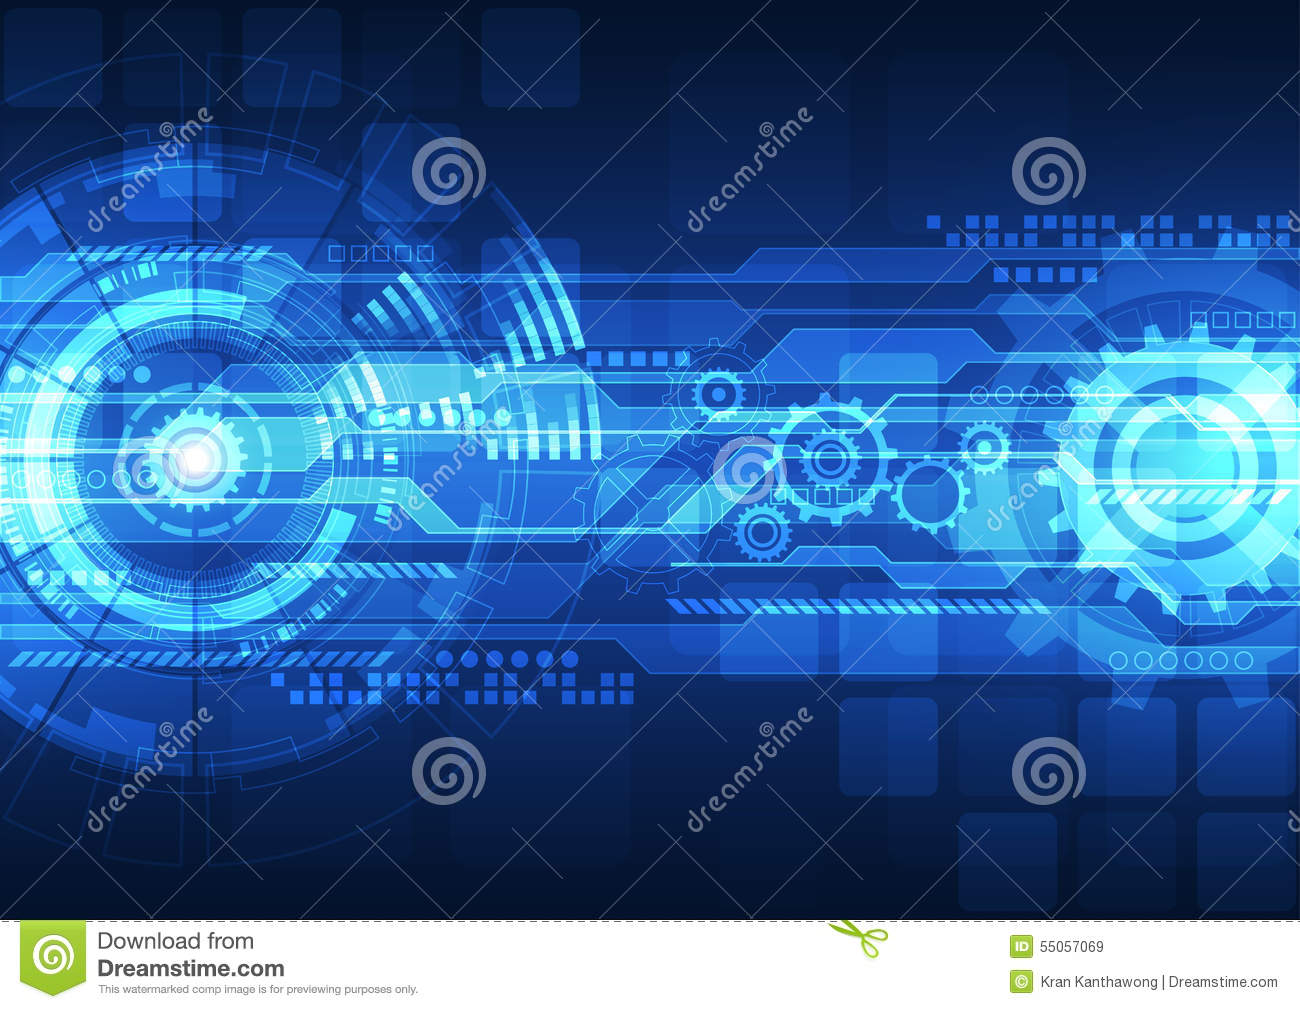 Beautiful Animal Pictures Wallpaper Vector Digital Technology Concept Abstract Background